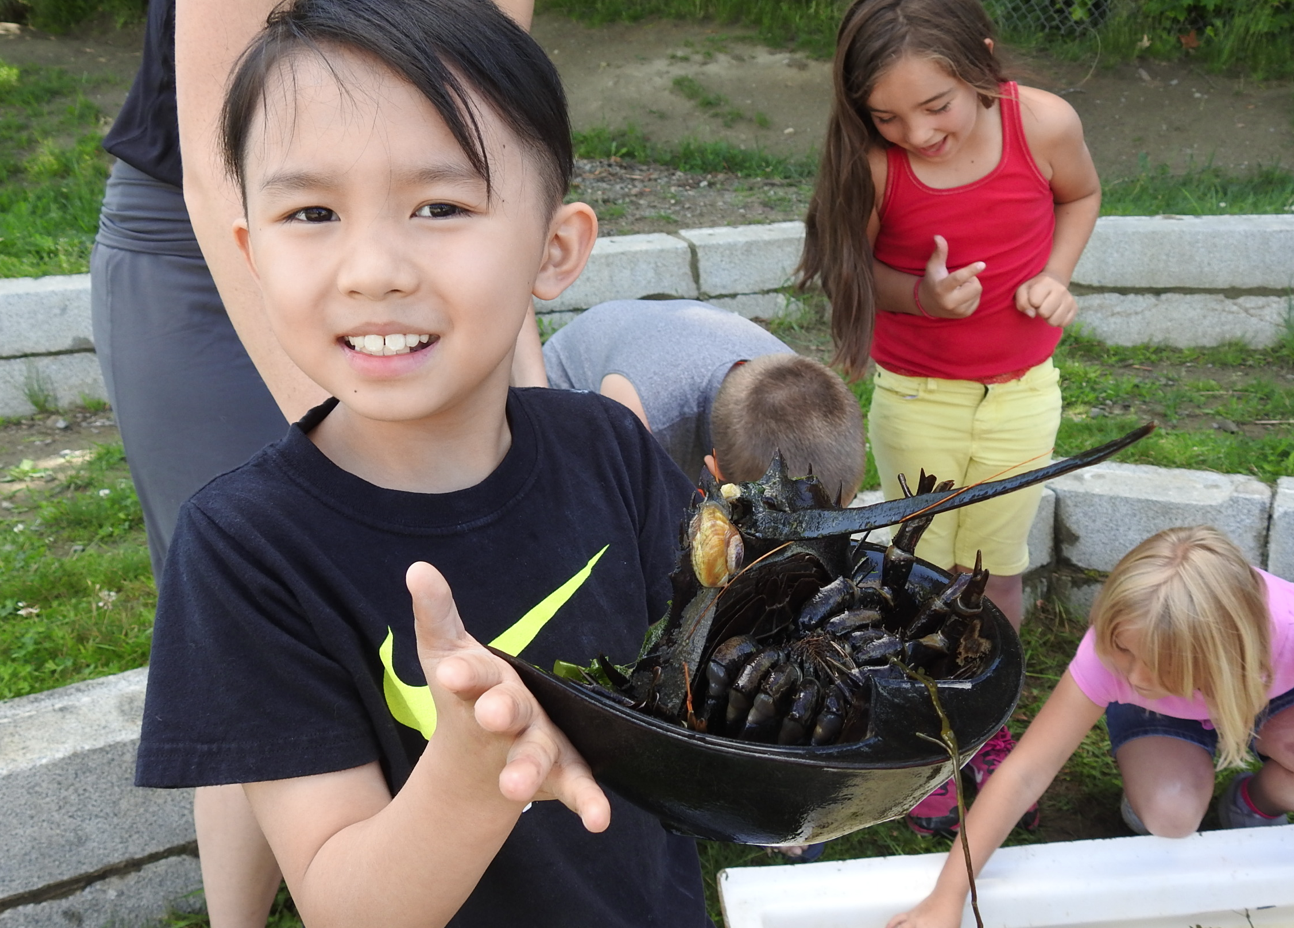 Andy Nguyen holds up a horseshoe crab in a summer learning camp held at Mallett School.